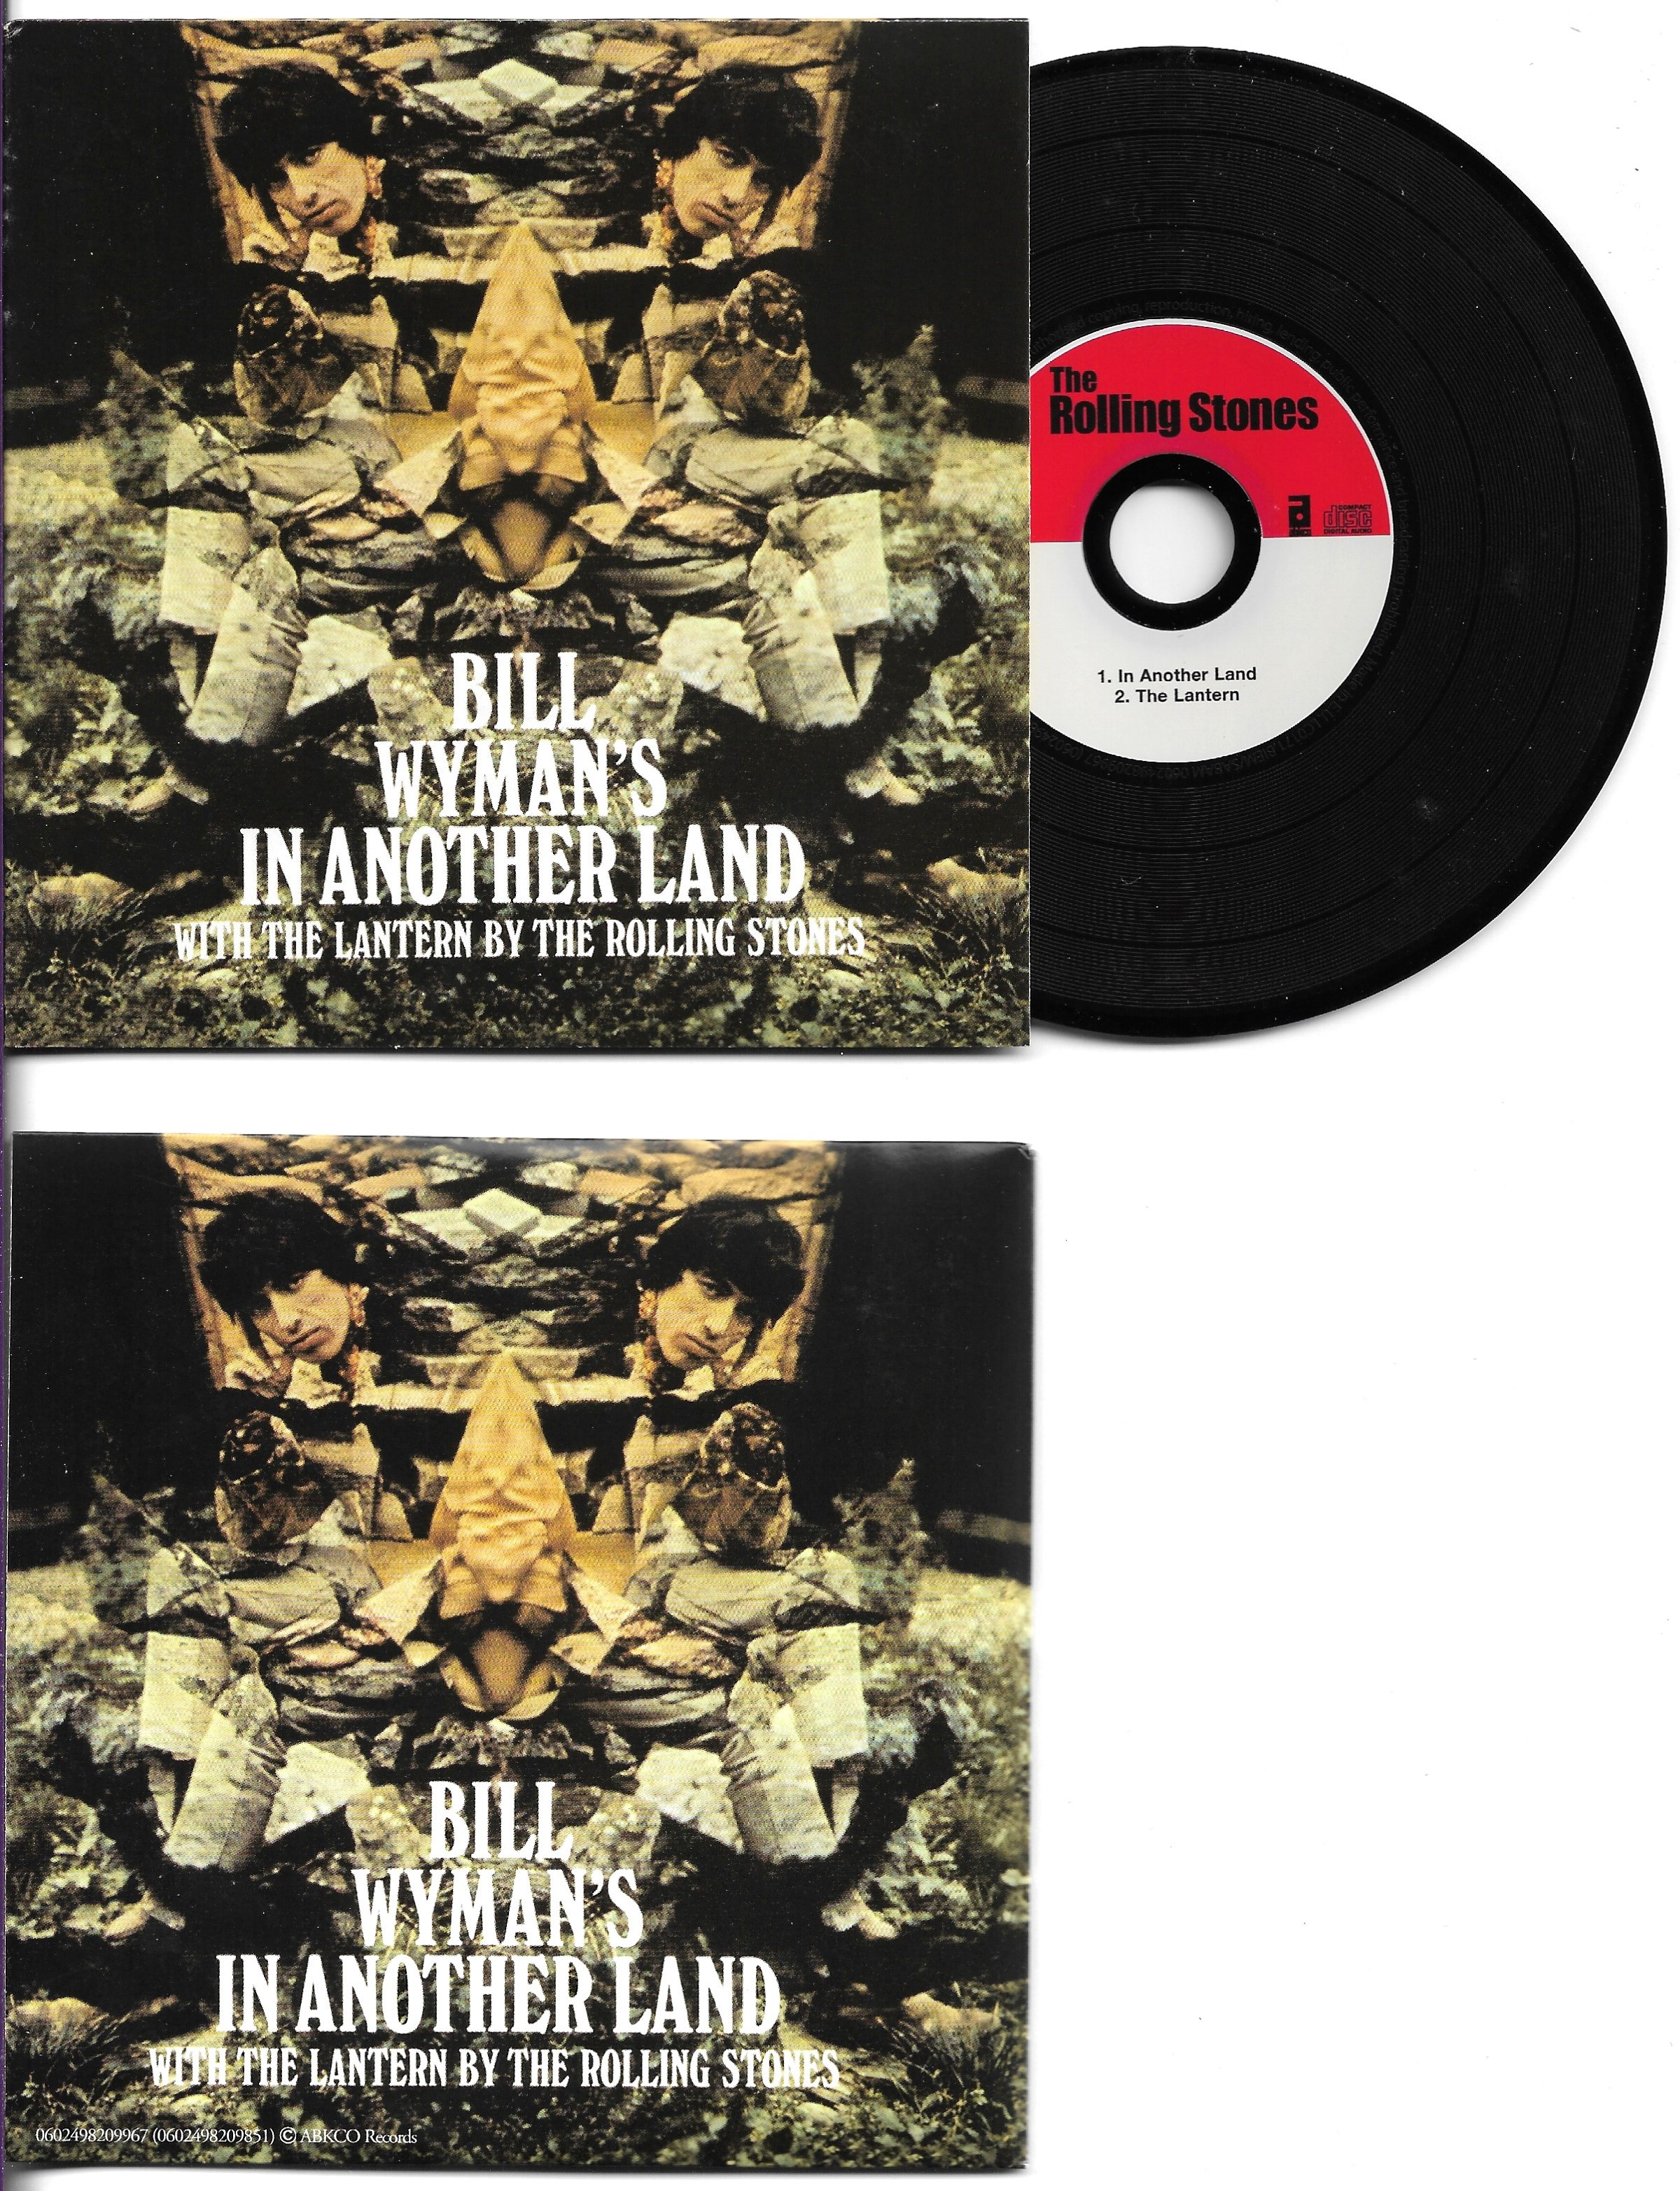 THE ROLLING STONES - BILL WYMAN - In another land 2-track CARD SLEEVE - CD single